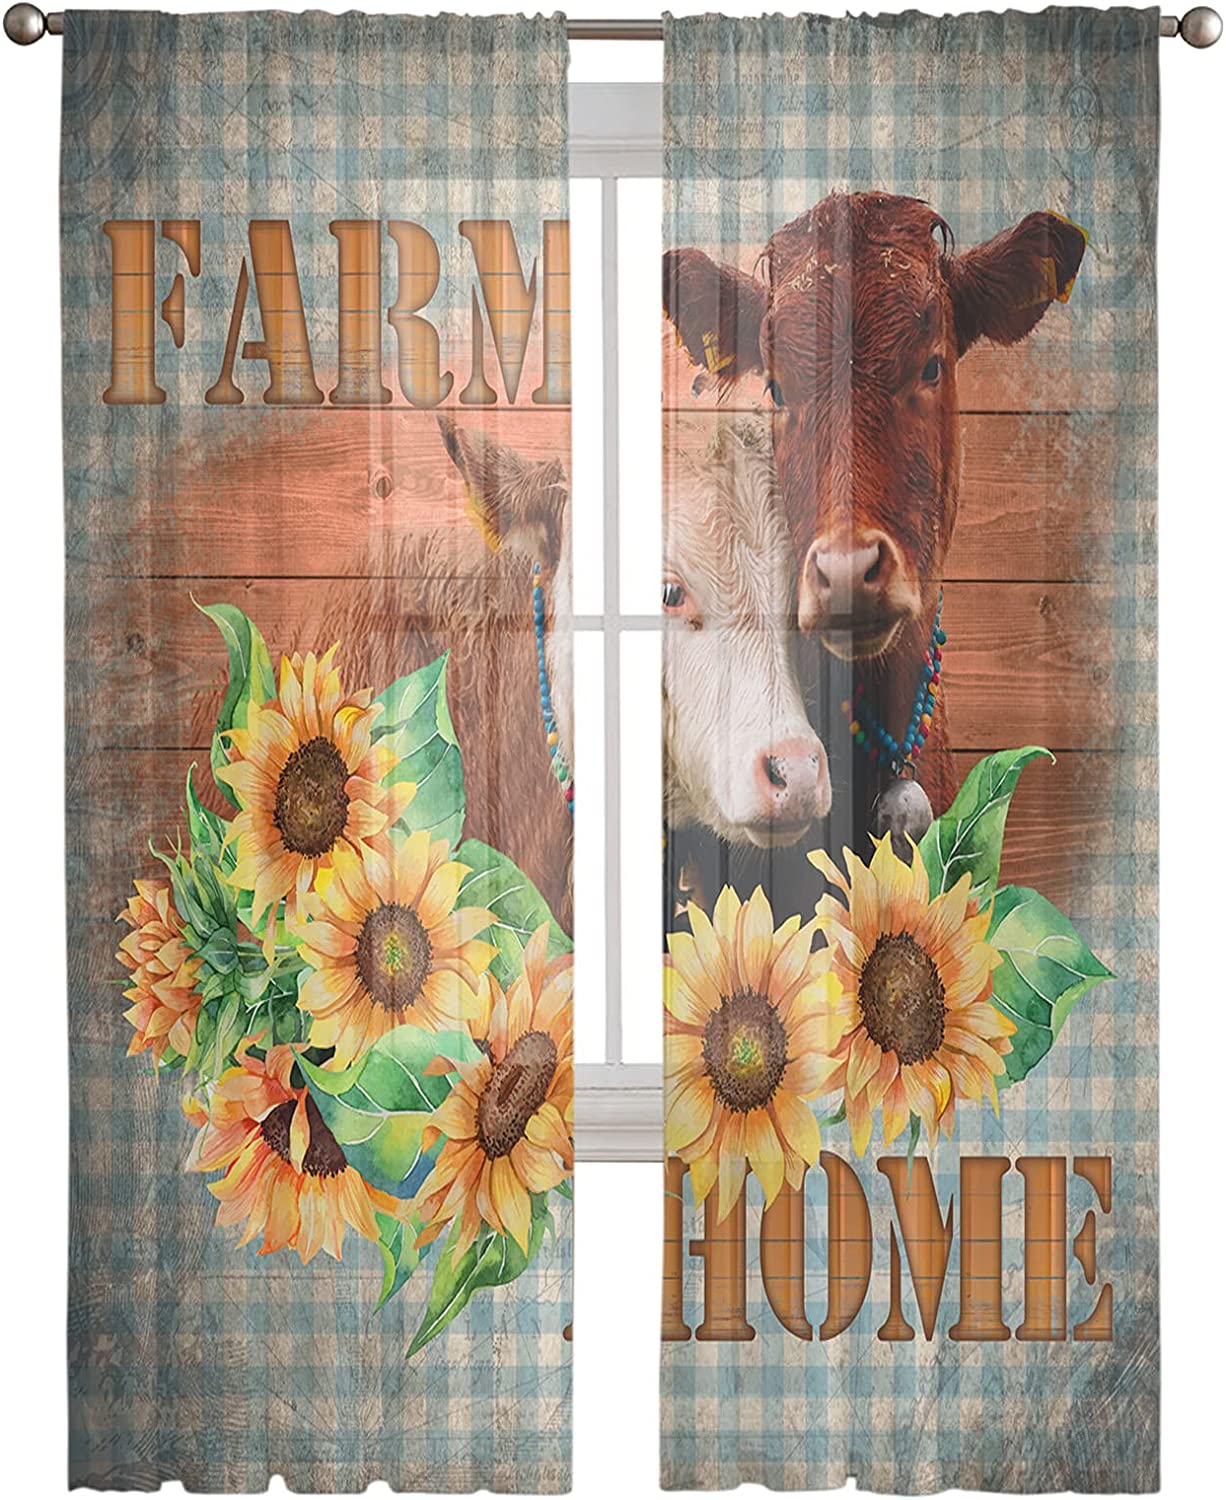 Sheer Curtain Panels Farm Max 46% OFF Home Window Chiffon Al sold out. Voile Cow